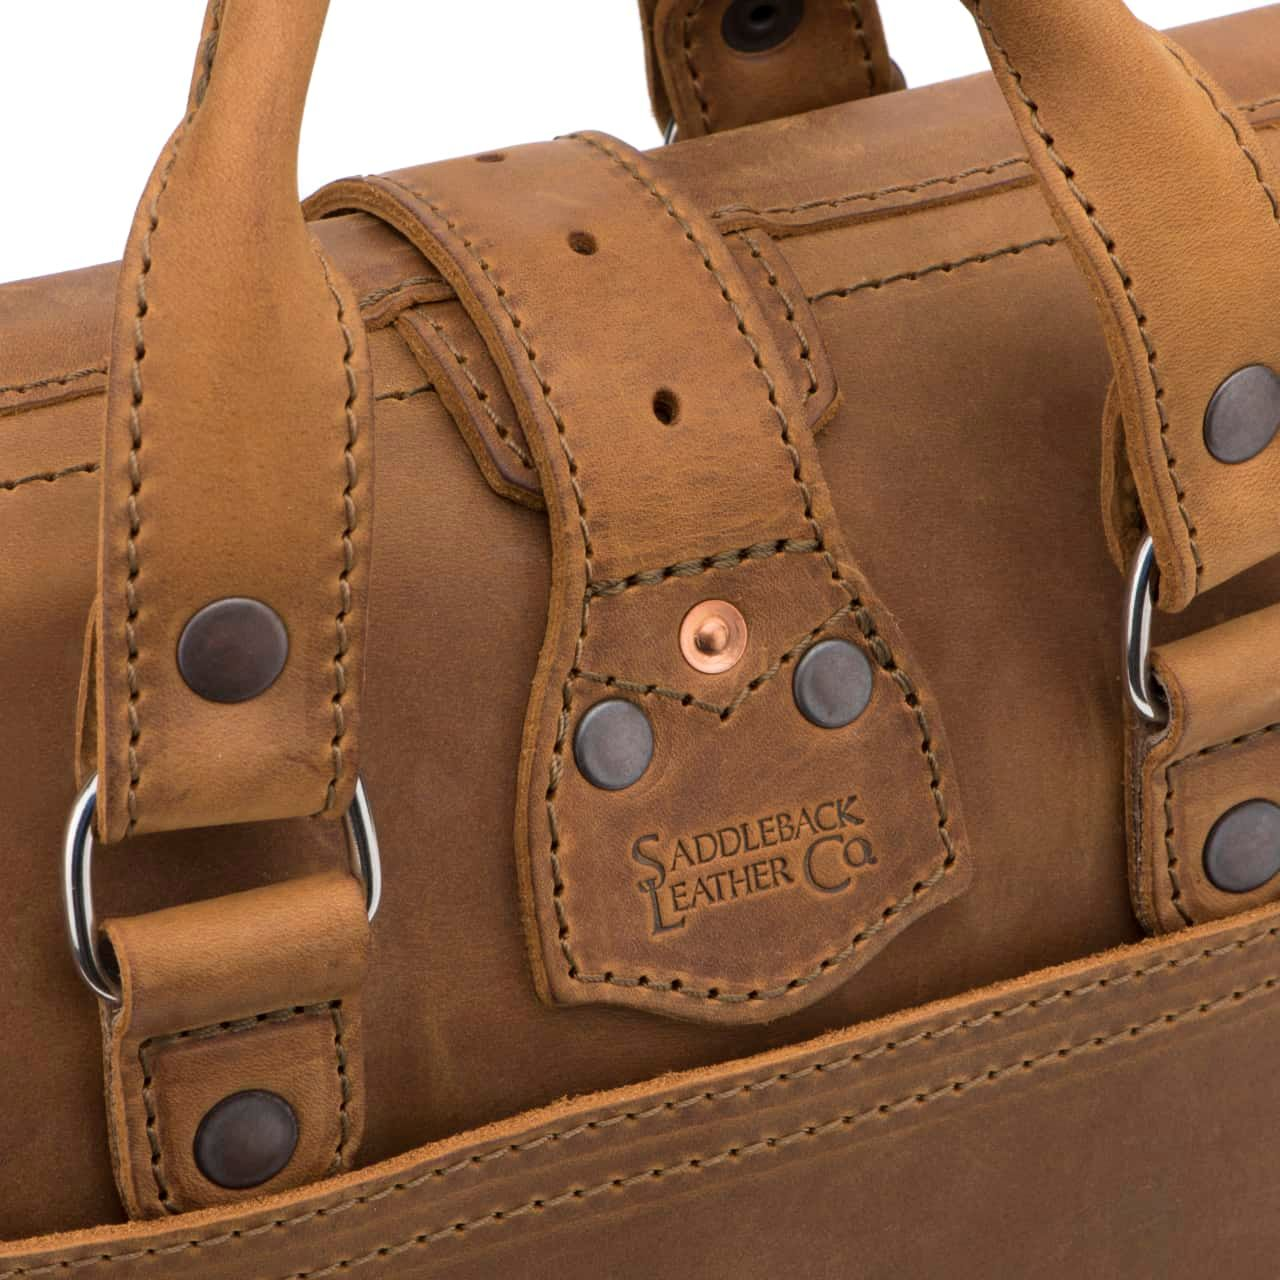 Leather Flight Bag in color Tobacco zoomed in on the Saddleback Brand on the Back